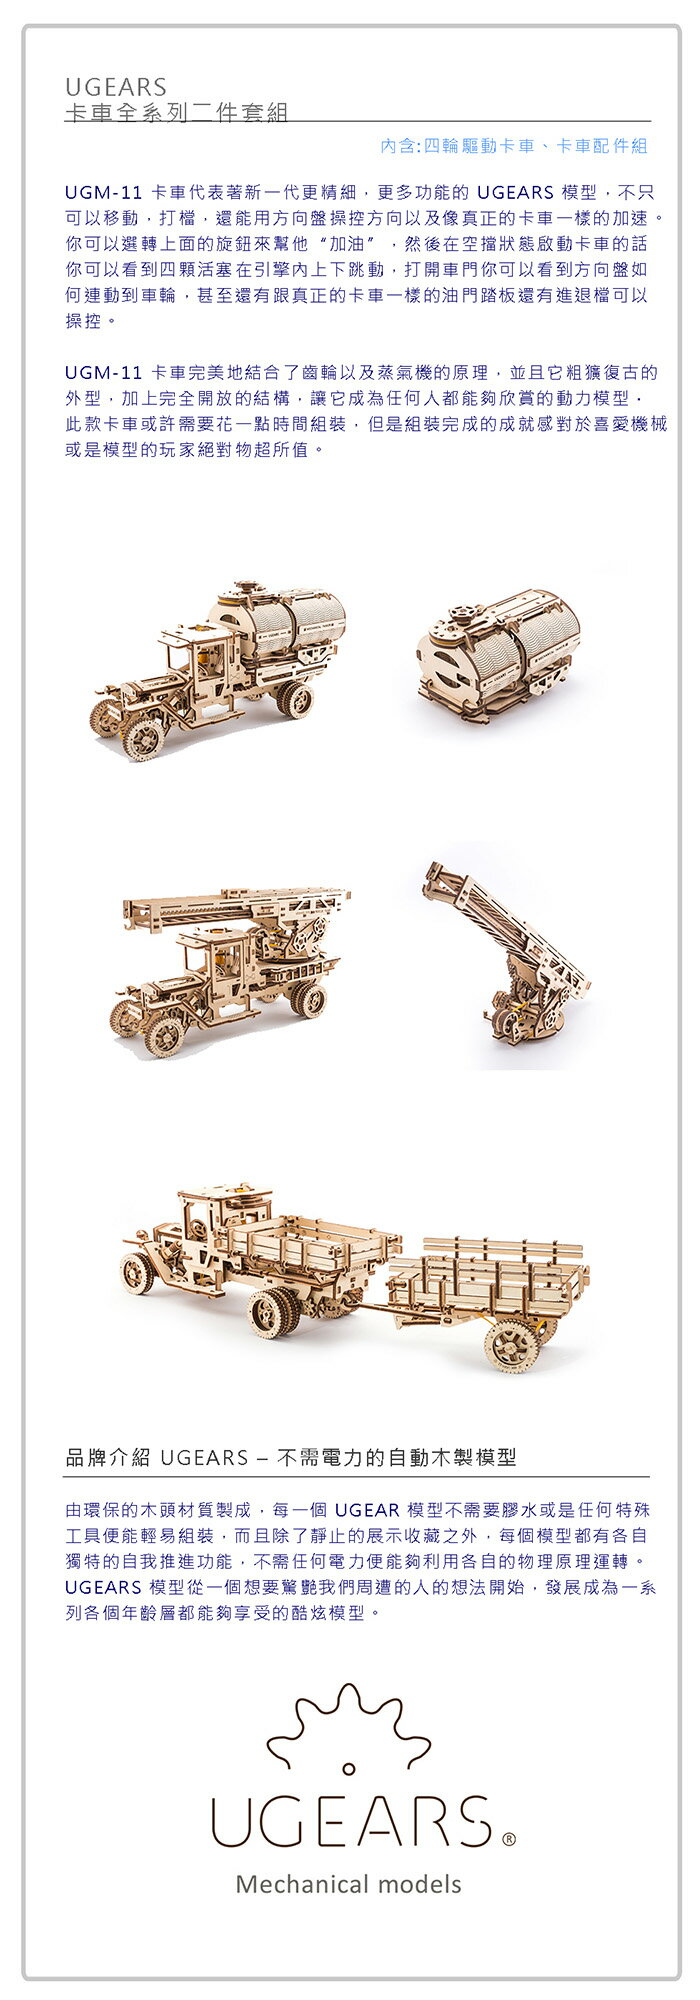 Ugears 自我推進模型 (Additions for Truck UGM-11卡車改造配件) 1